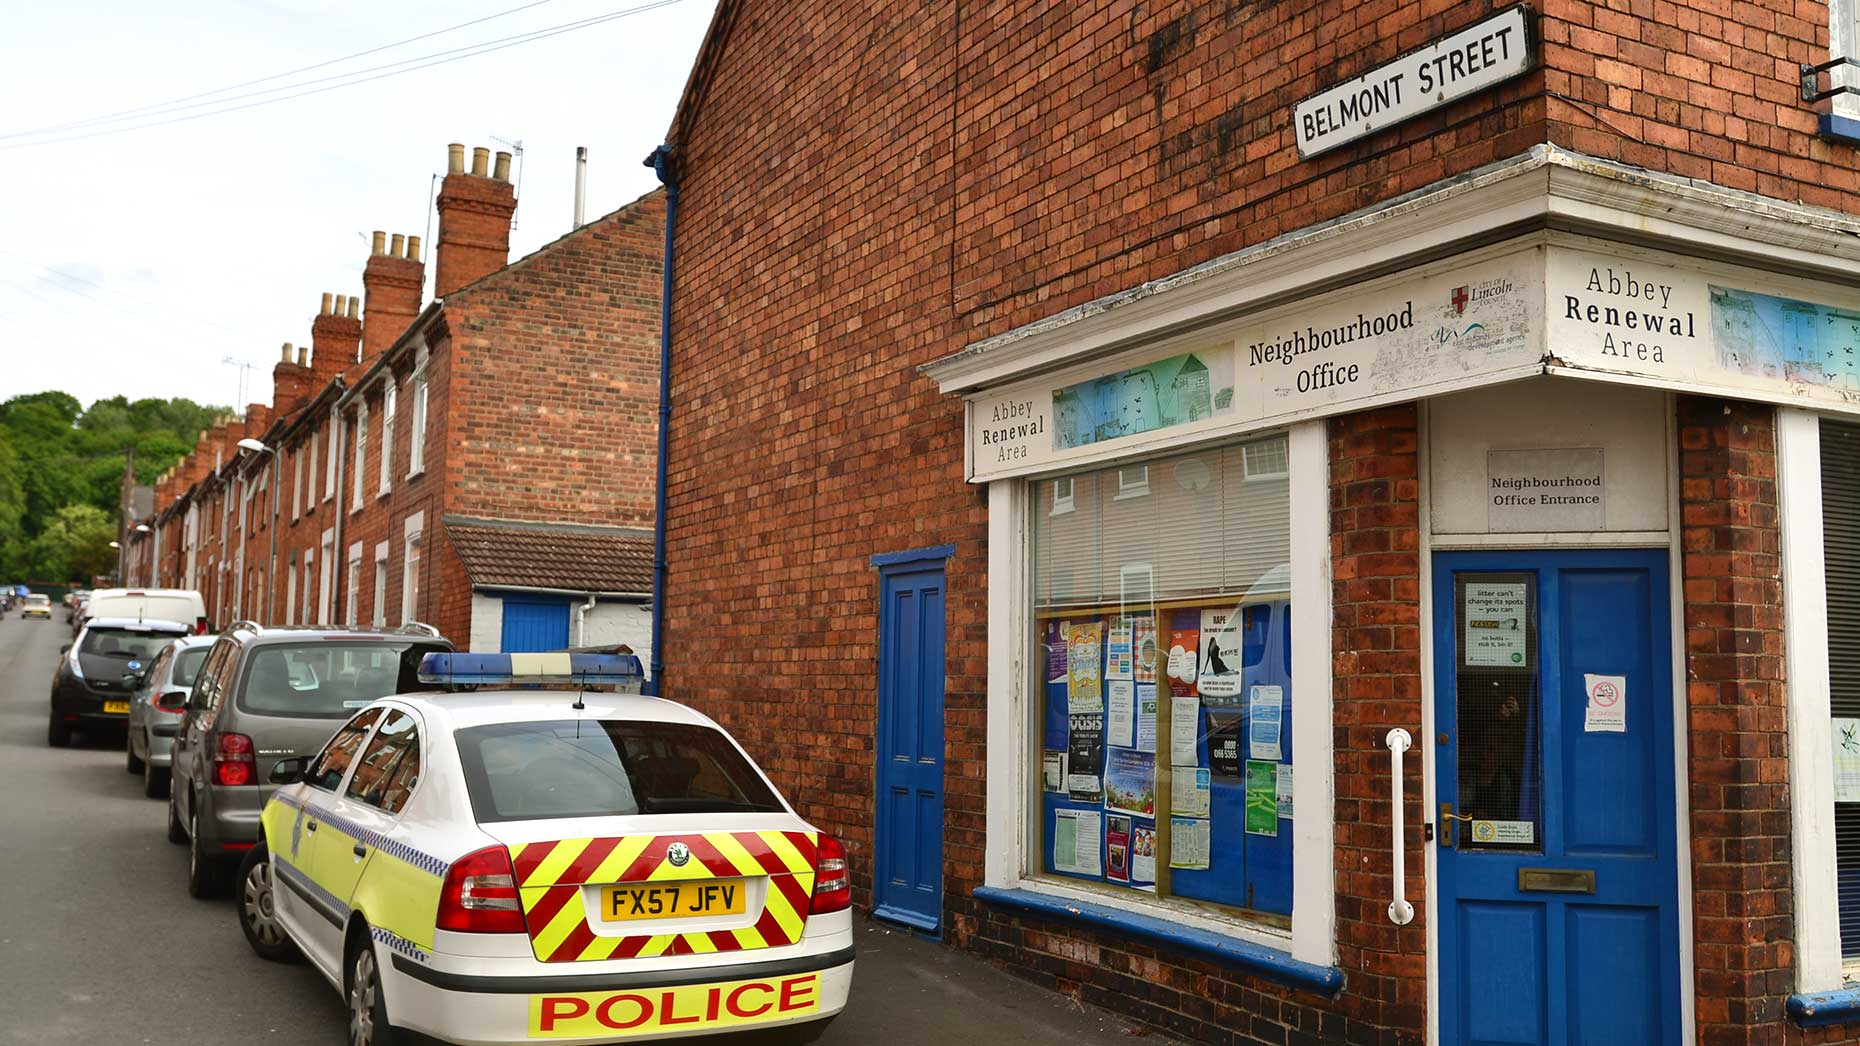 Police carrying out investigations on Belmont Street off Monks Road in Lincoln. Photo: Steve Smailes/The Lincolnite